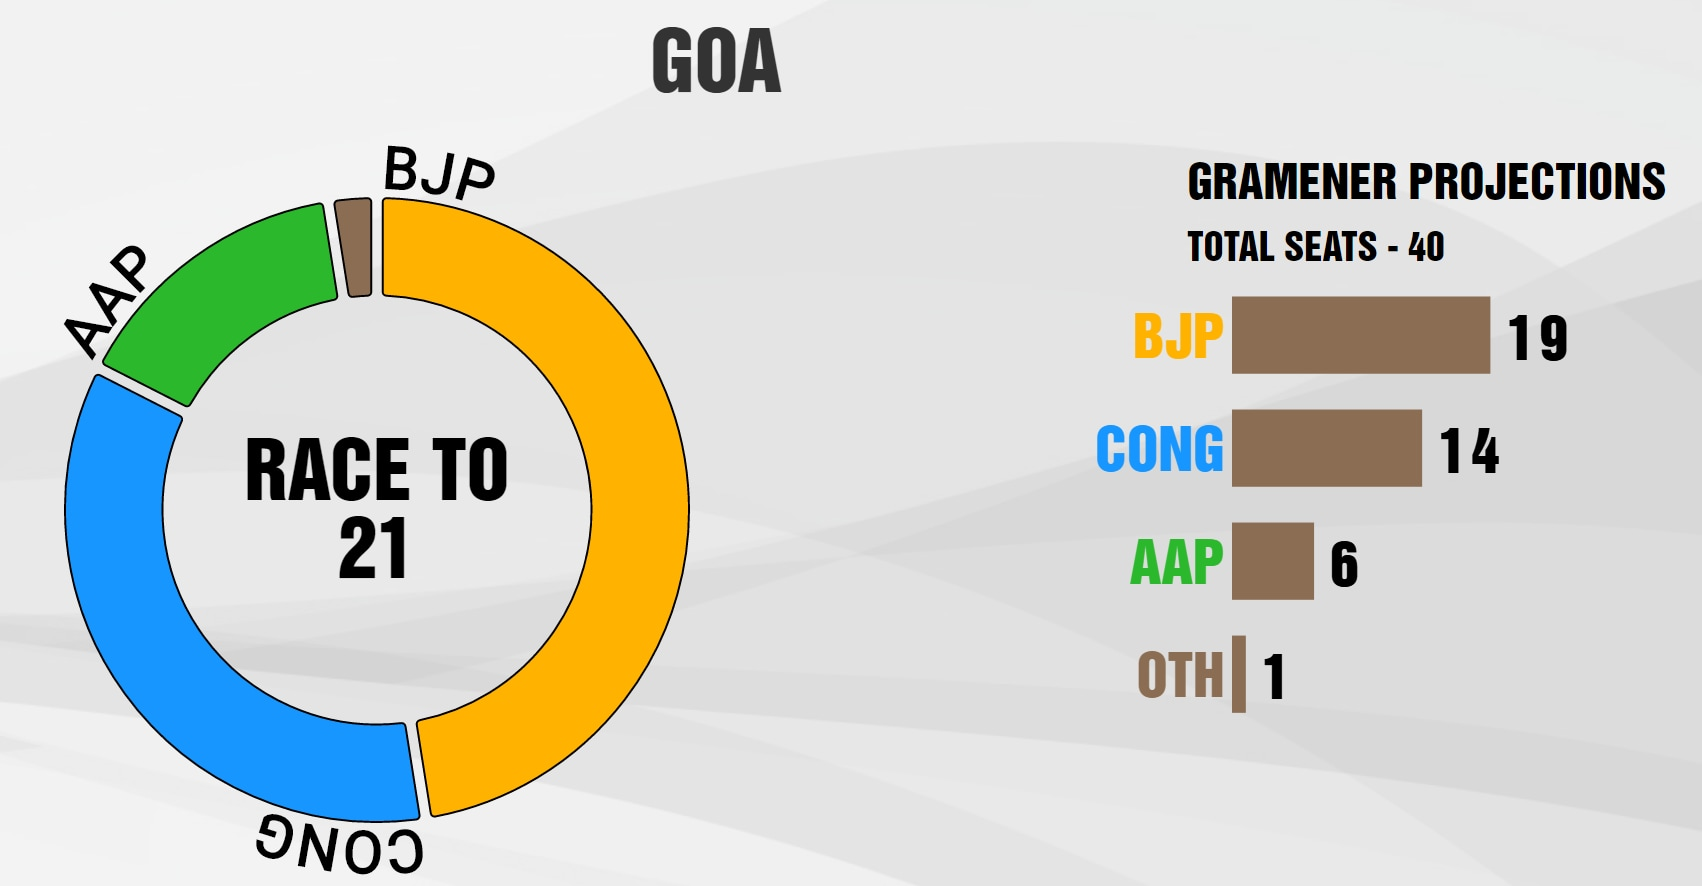 network18-gramener-projections-goa